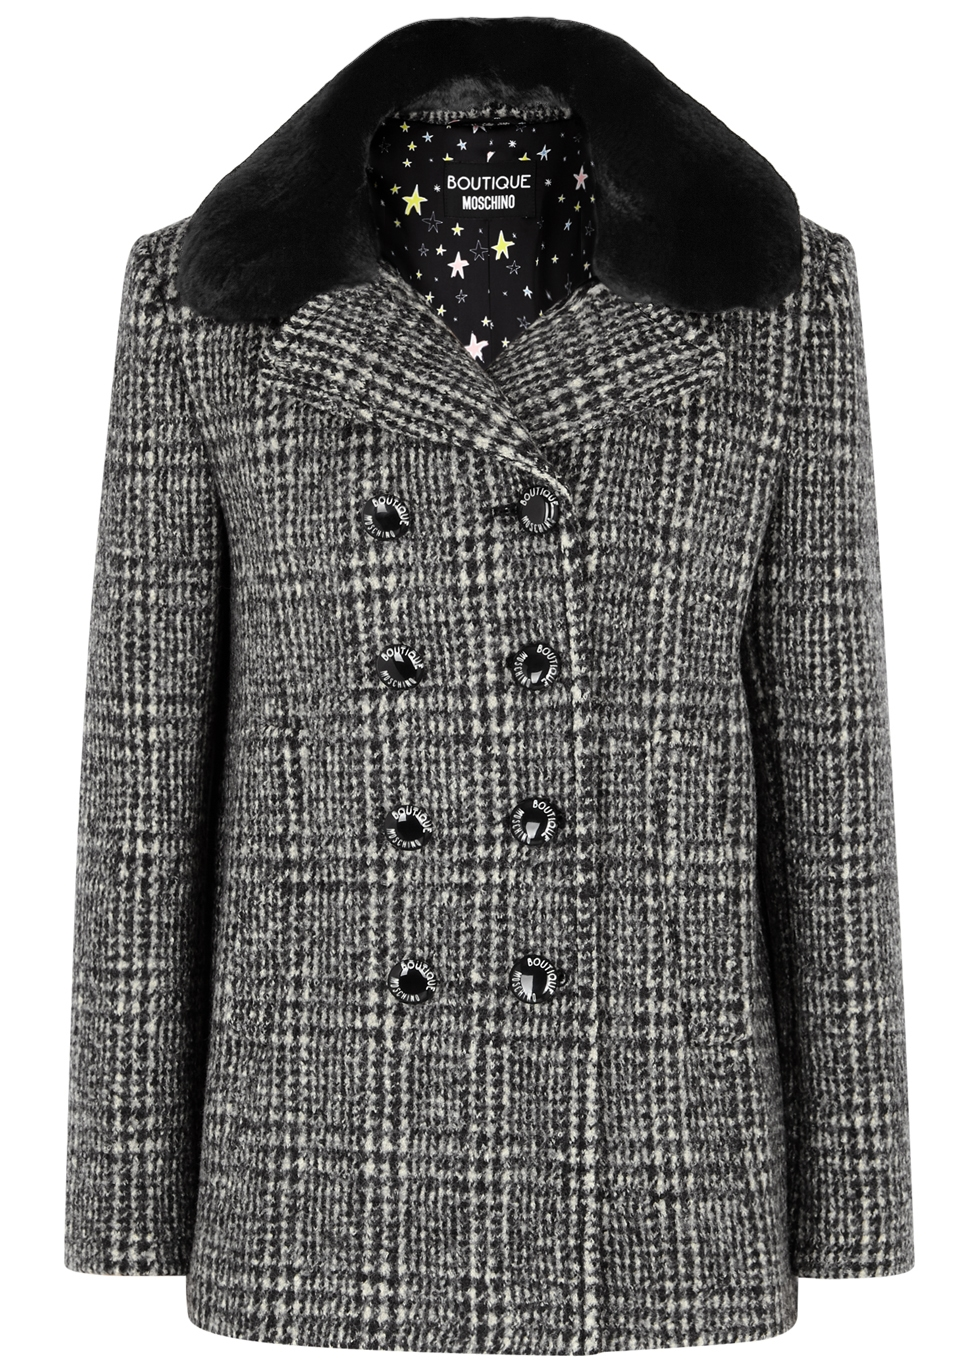 BOUTIQUE MOSCHINO CHECKED FUR-TRIMMED WOOL COAT